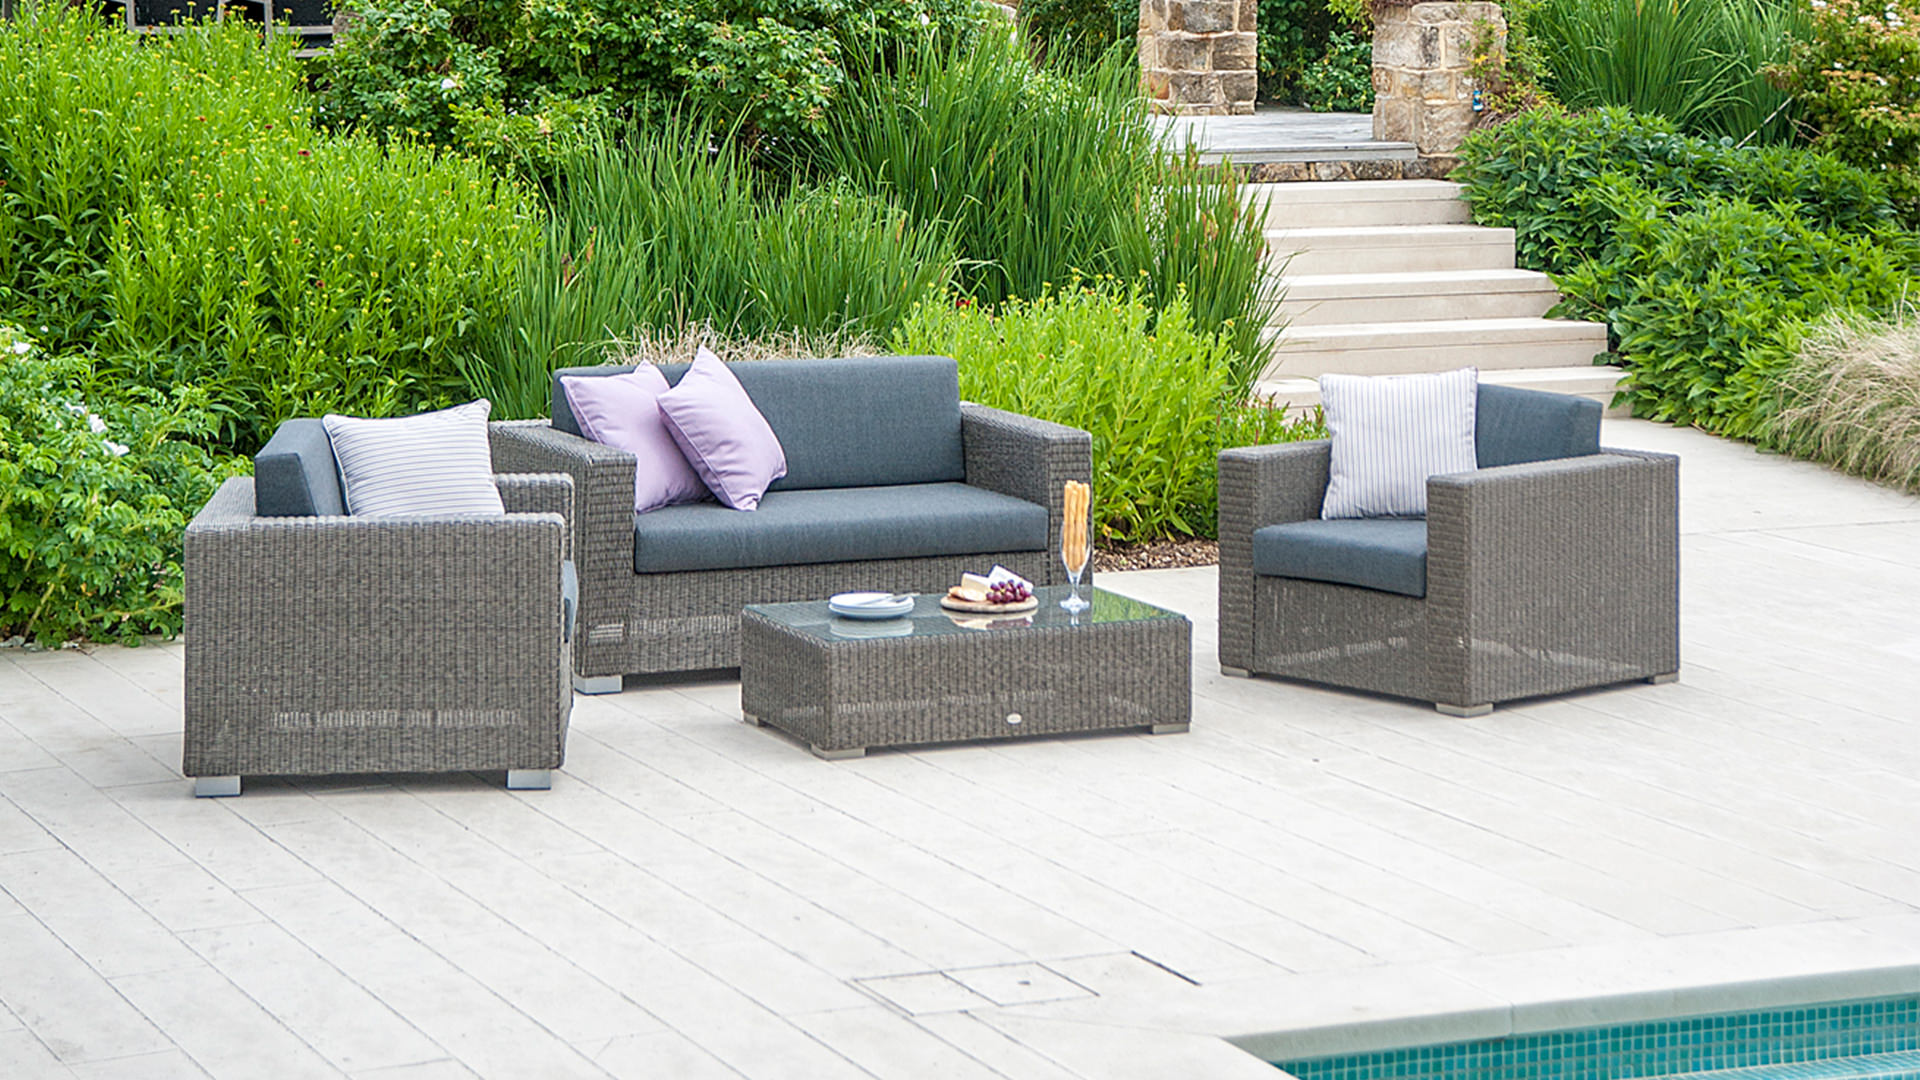 Garden Rattan Sofa Uk Garden Furniture Collections By Alexander Rose